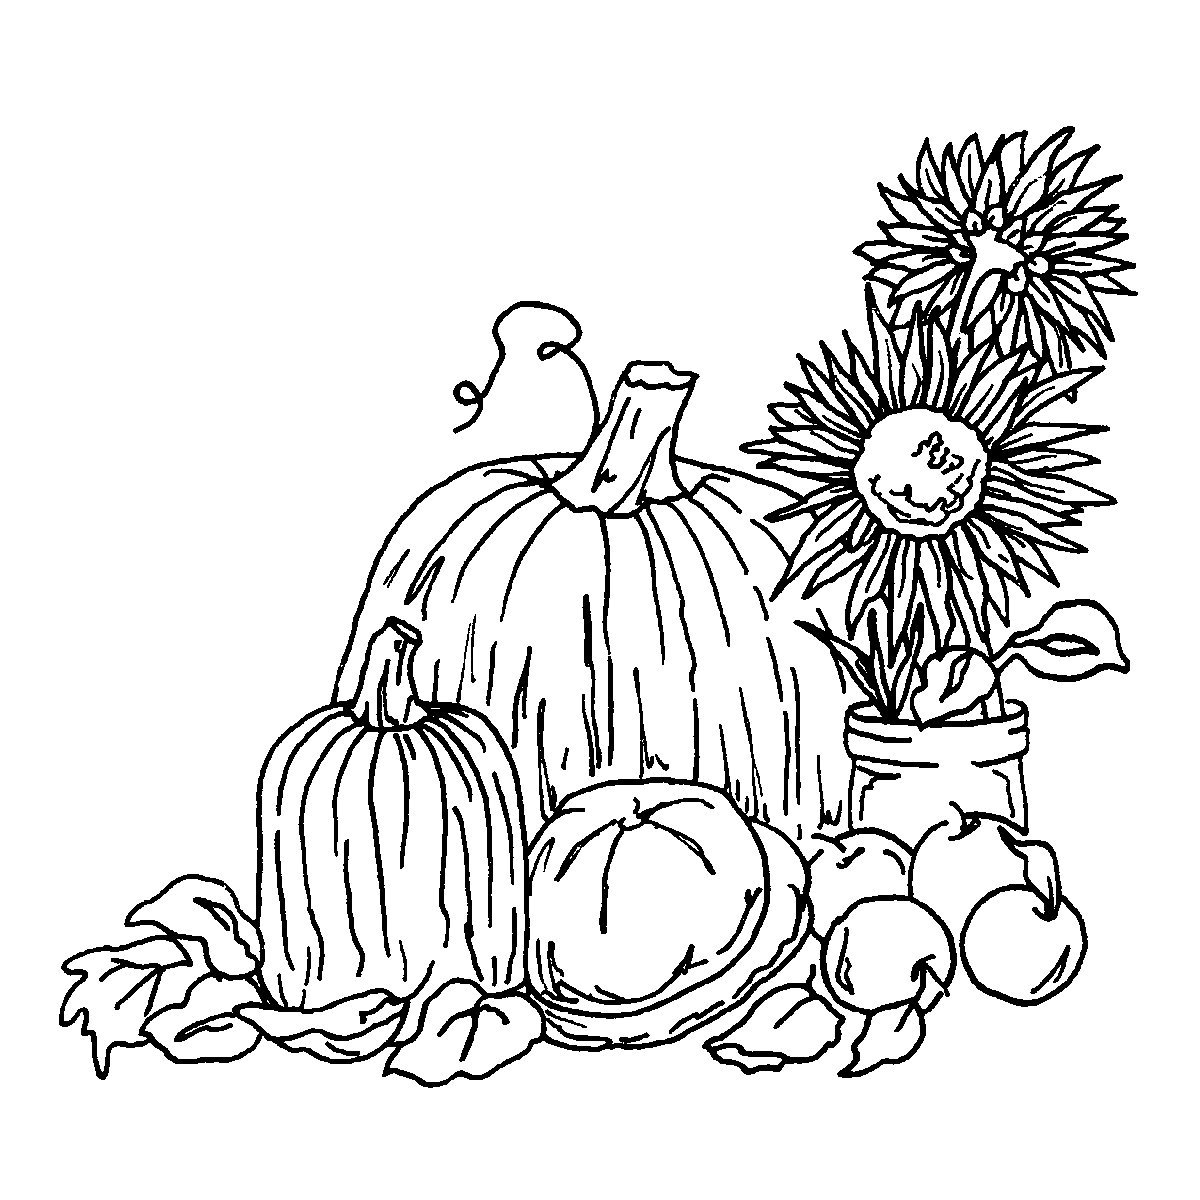 harvest coloring pictures harvest coloring pages best coloring pages for kids coloring harvest pictures